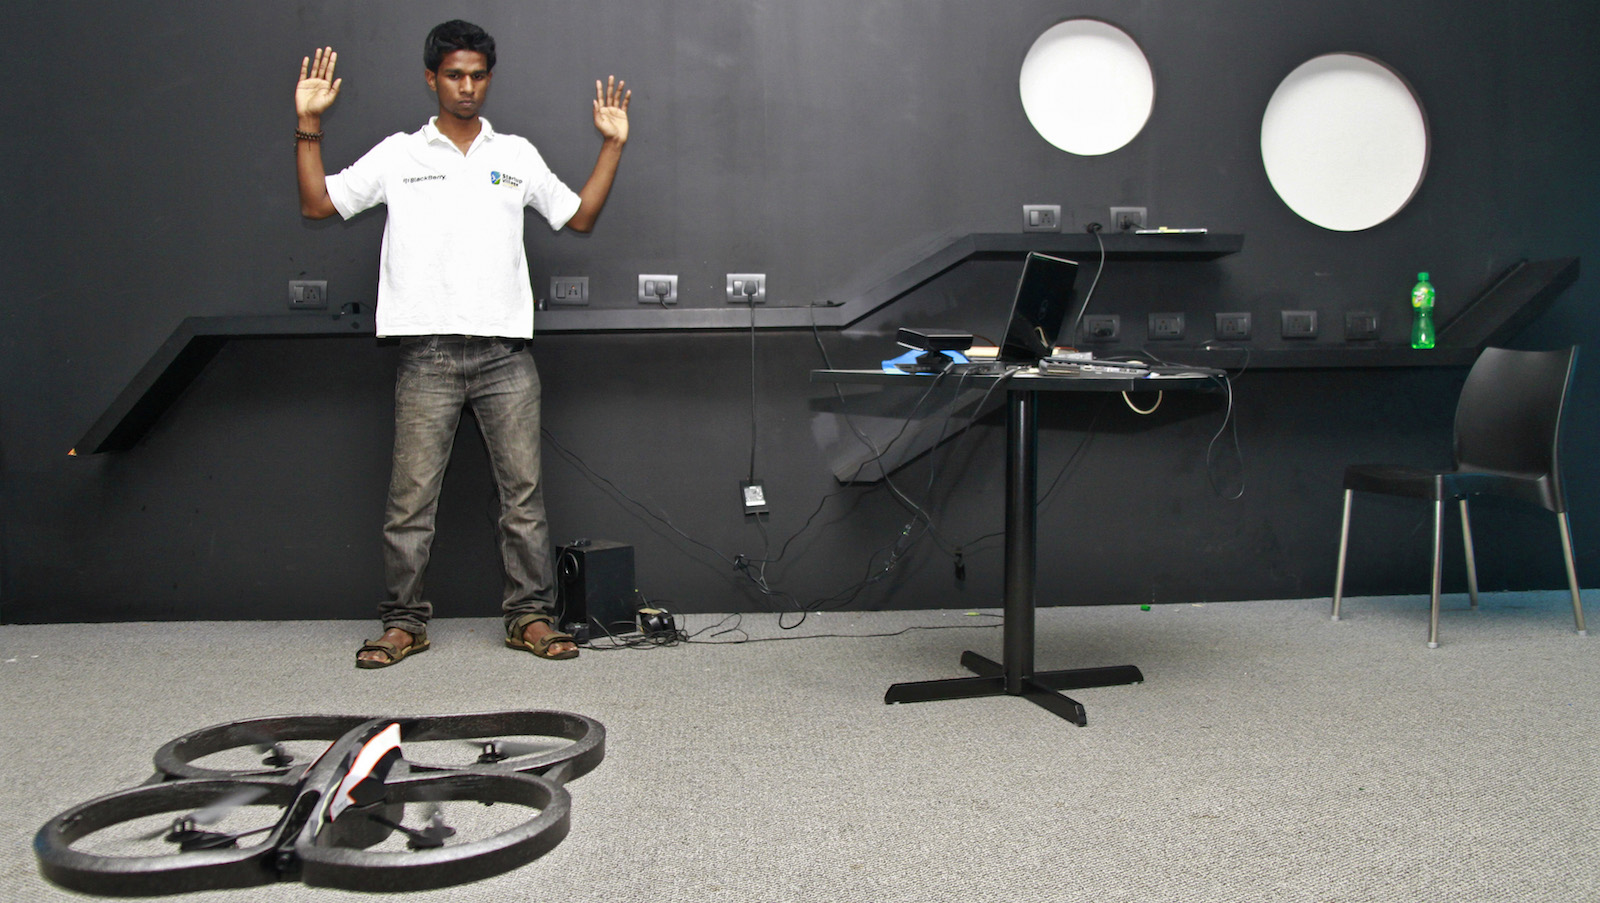 Vivek, an engineering student, demonstrates as he tries to control a Quad-copter with his hand at the Start-up Village in Kinfra High Tech Park in the southern Indian city of Kochi October 13, 2012. Three decades after Infosys, India's second-largest software service provider, was founded by middle-class engineers, the country has failed to create an enabling environment for first-generation entrepreneurs. Startup Village wants to break the logjam by helping engineers develop 1,000 Internet and mobile companies in the next 10 years. It provides its members with office space, guidance and a chance to hobnob with the stars of the tech industry. But critics say this may not even be the beginning of a game-changer unless India deals with a host of other impediments - from red tape to a lack of innovation and a dearth of investors - that are blocking entrepreneurship in Asia's third-largest economy. Picture taken October 13, 2012.